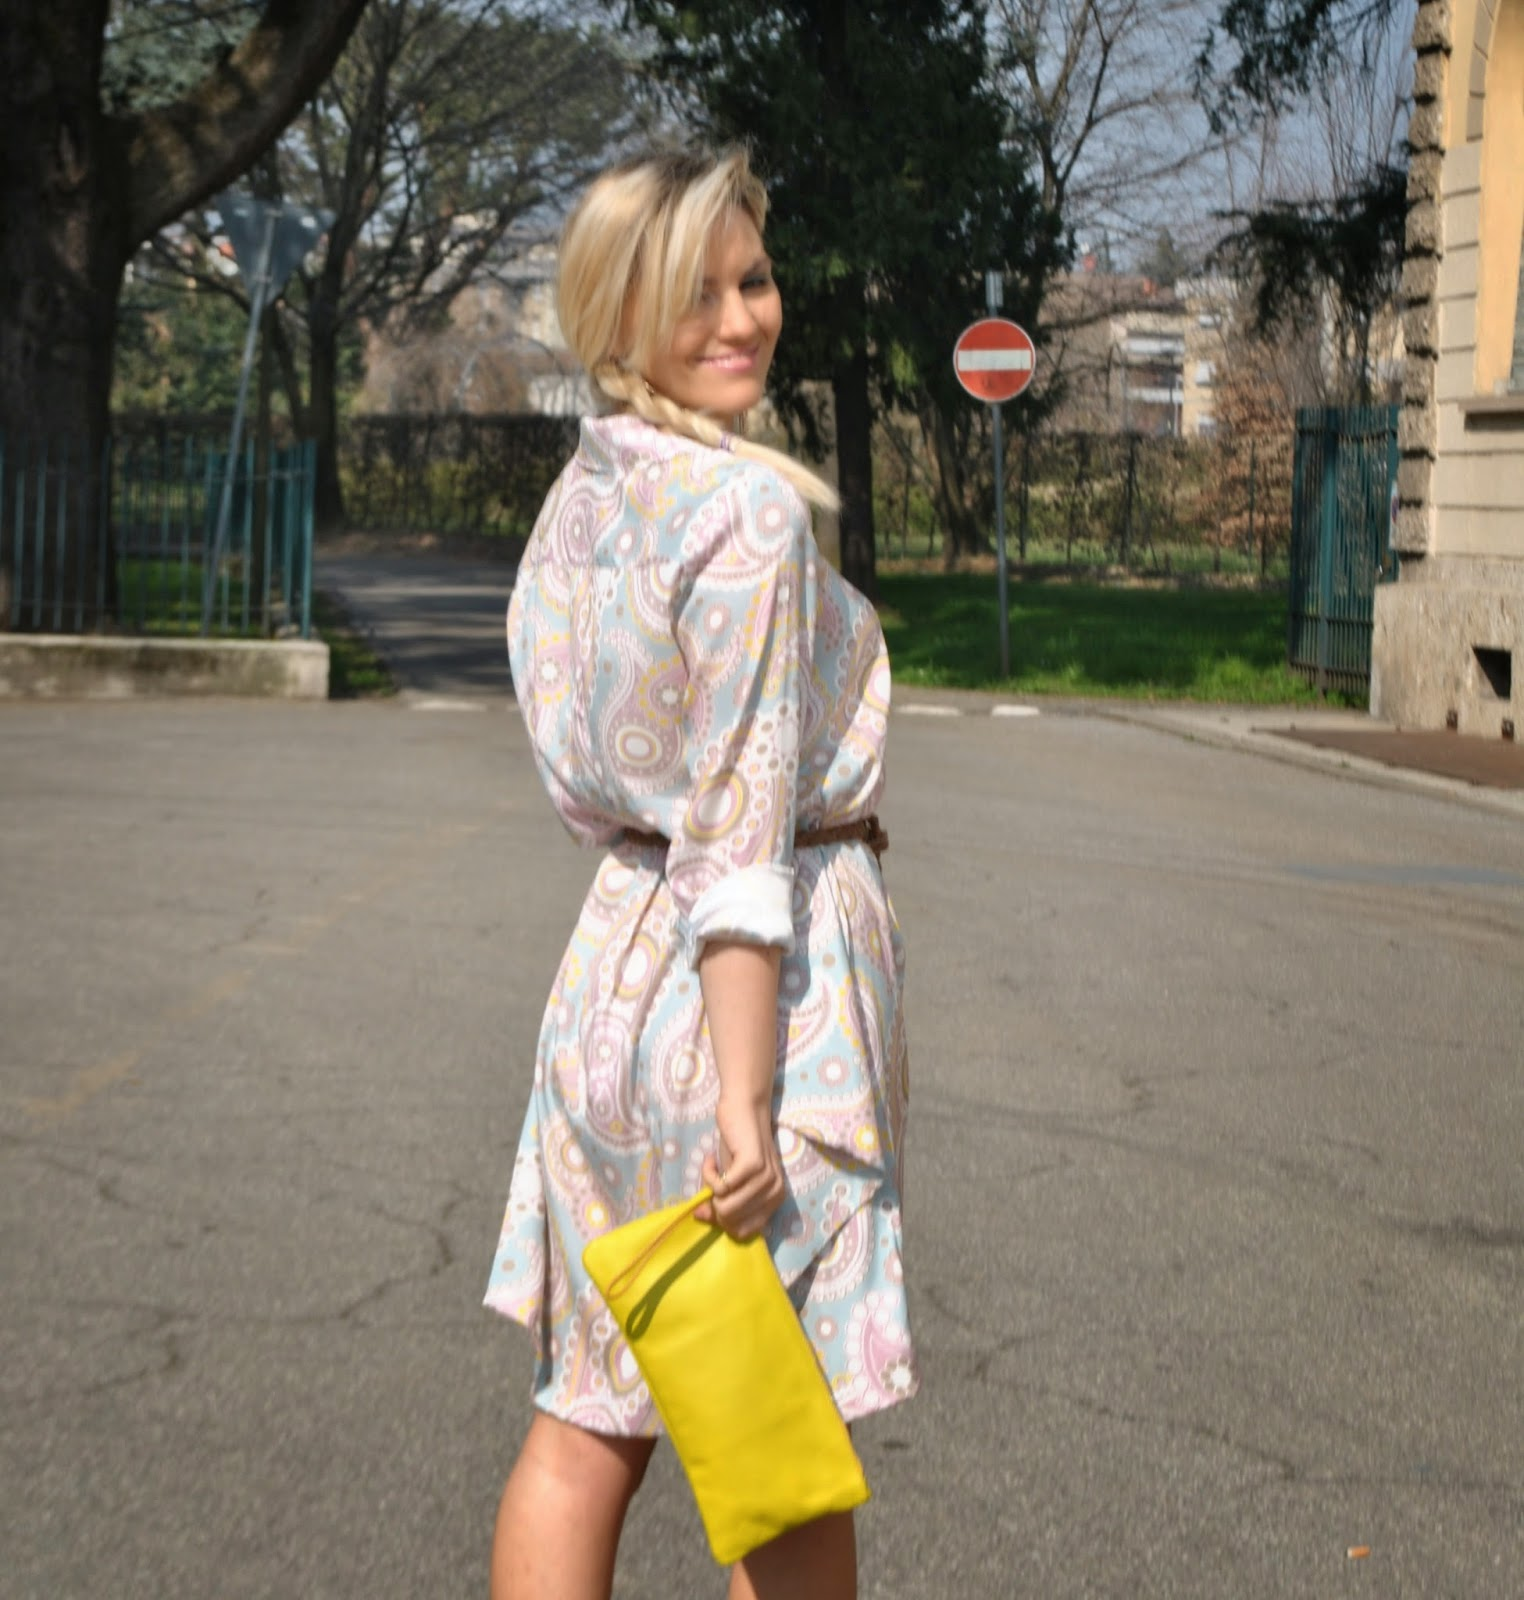 outfit abito chemisier come abbinare lo chemisier abito a camicia abito in seta stampata mariafelicia magno colorblock by felym mariafelicia magno fashion blogger abito in seta stampata outfit giallo outfit scarpe gialle come abbinare le scarpe gialle abbinamenti giallo come abbinare la borsa gialla outfit borsa gialla outfit marzo 2015 outfit primaverili fattori seta fattori fattori abbigliamento scarpe guess orecchini majique shirt dress how to wear shirt dress how to wear yellow spring dress fashion bloggers italy blonde girl blonde hair majique earrings blogger italiane di moda fashion blogger milano